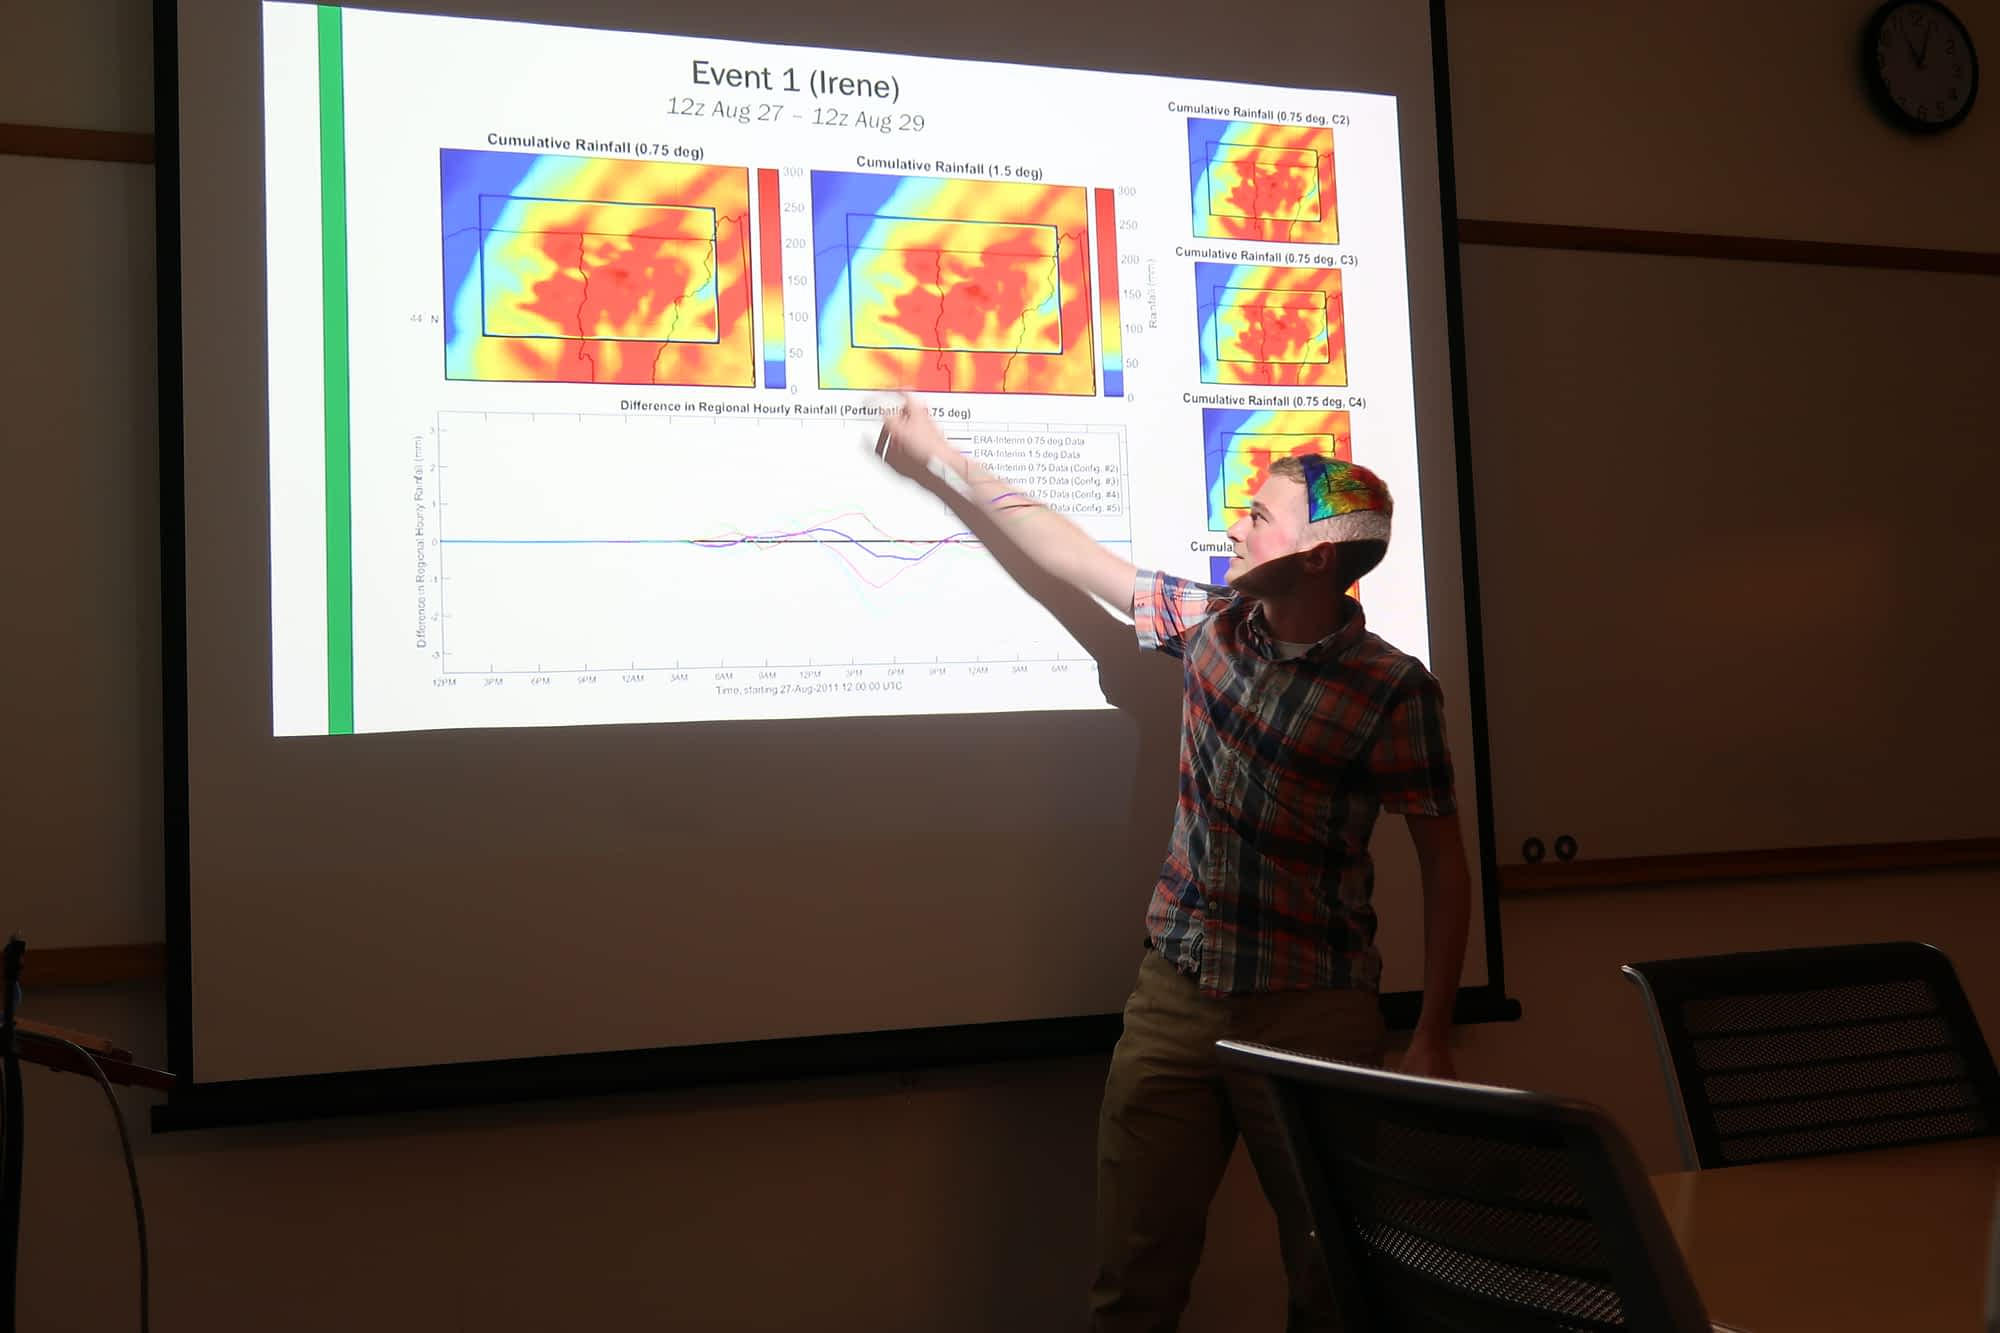 <br>Ben Frechette shows the effect of changing ERA-Interim model resolutions on precipitation during Tropical Storm Irene